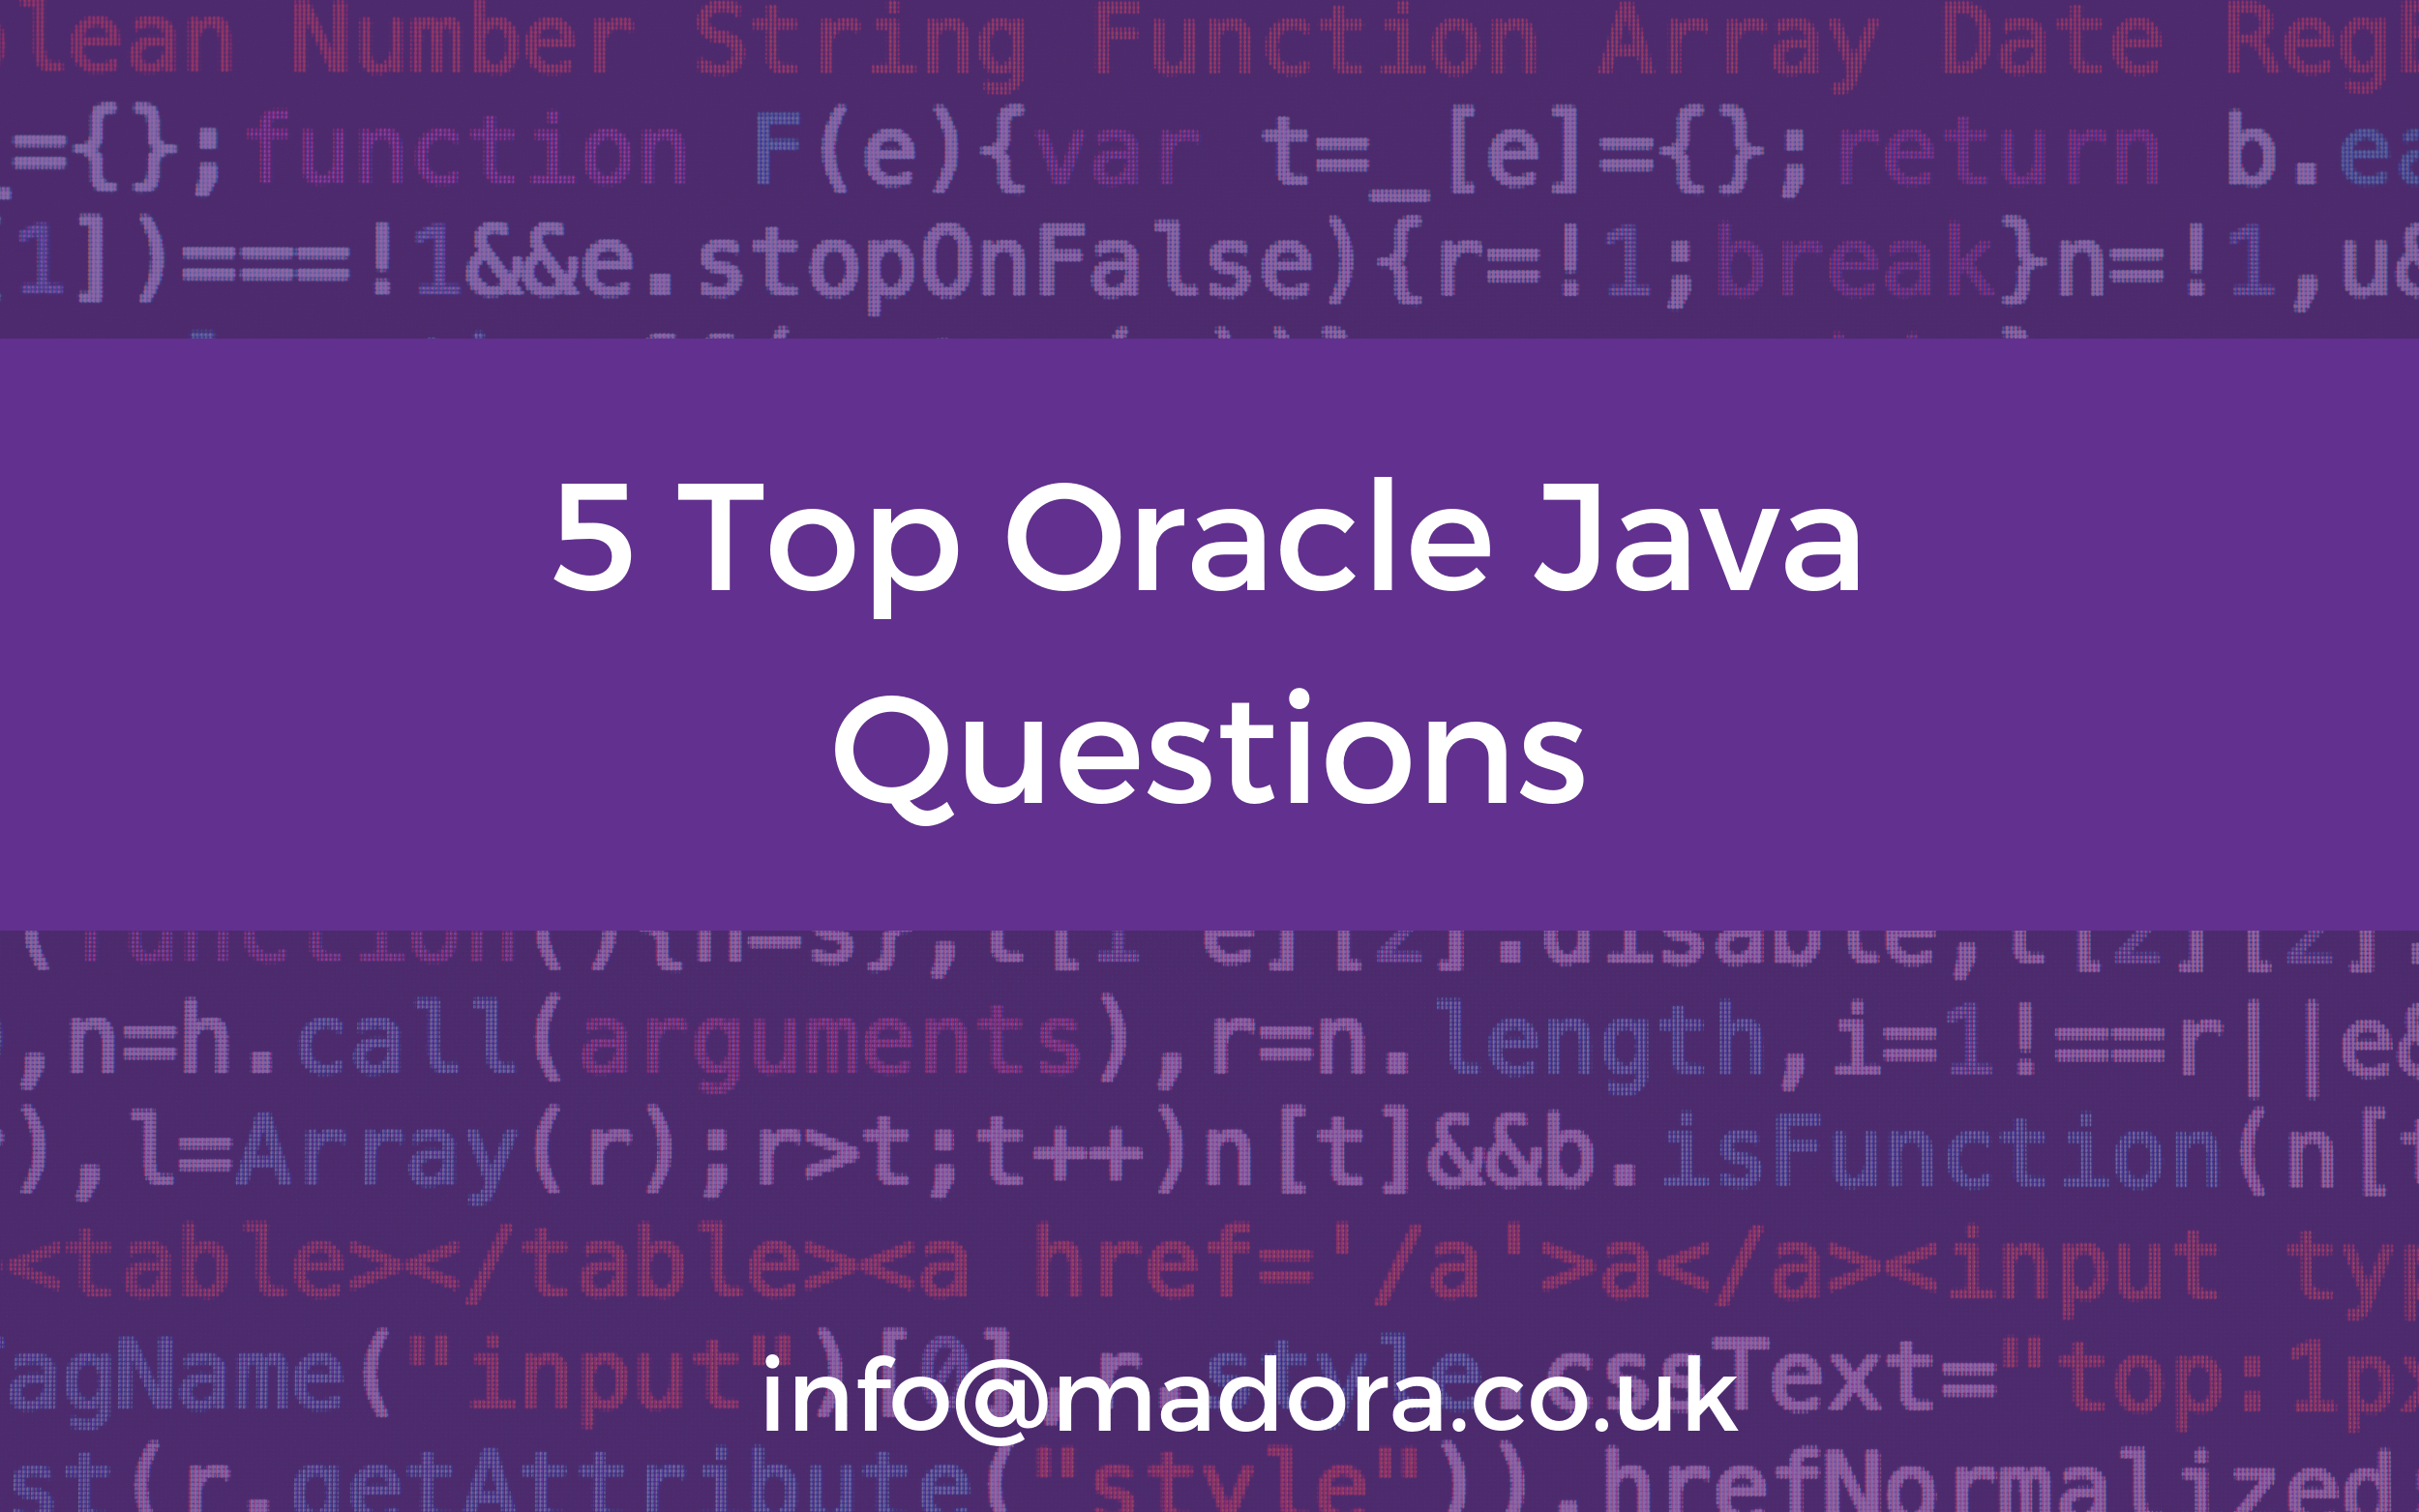 5 Top Oracle Java Questions | Madora Consulting